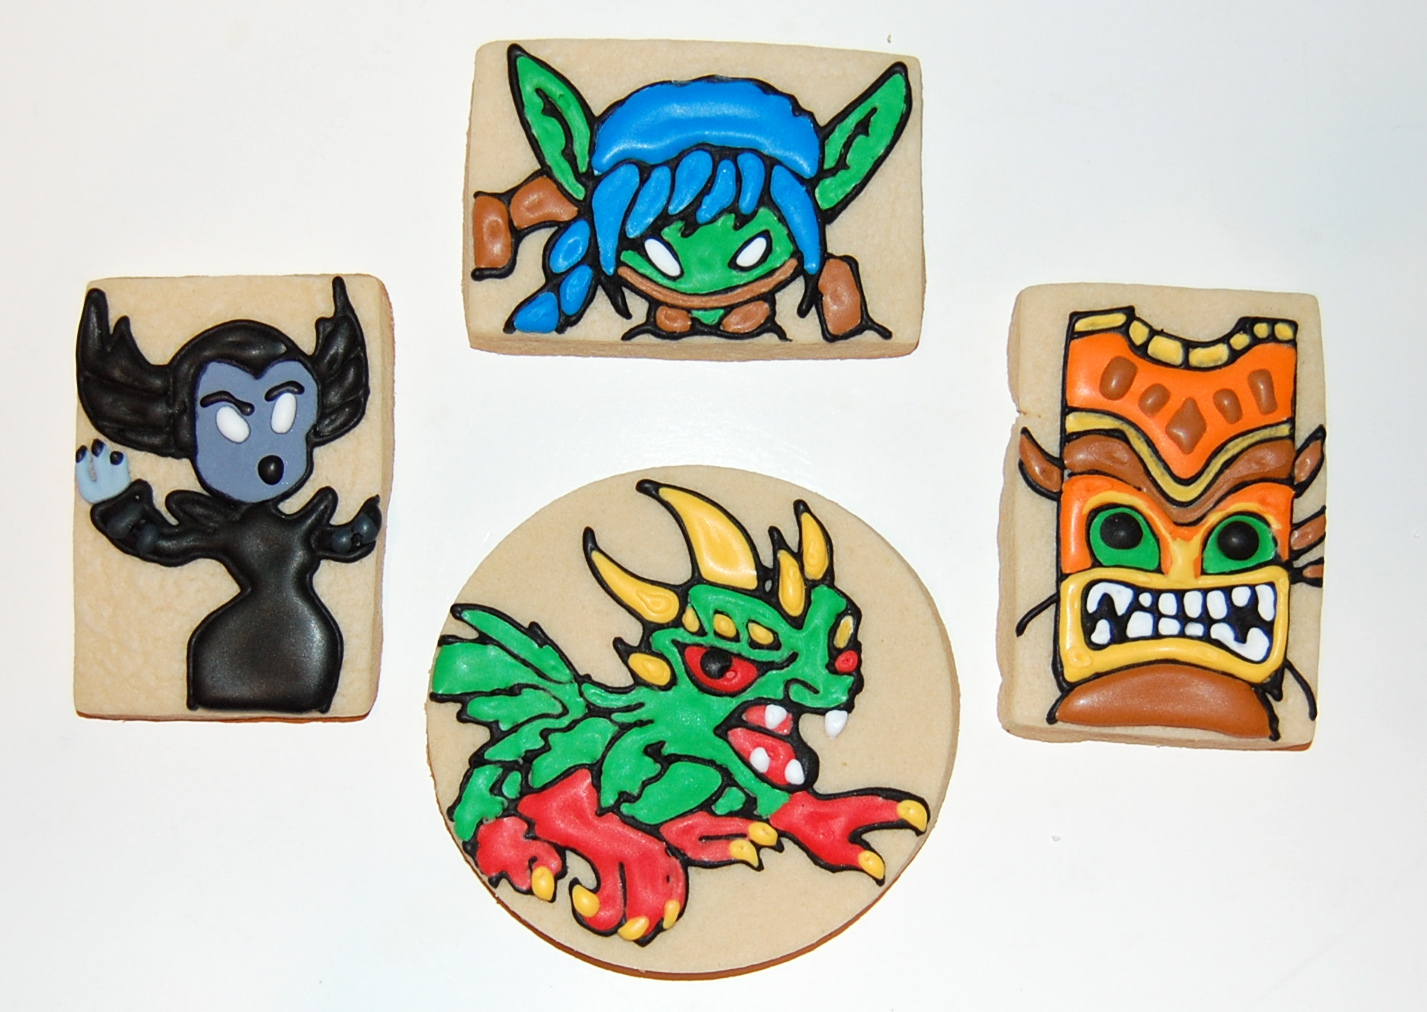 Skylander Characters Sugar Cookie - Stealth Elf, Double Trouble, Camo, and Hex